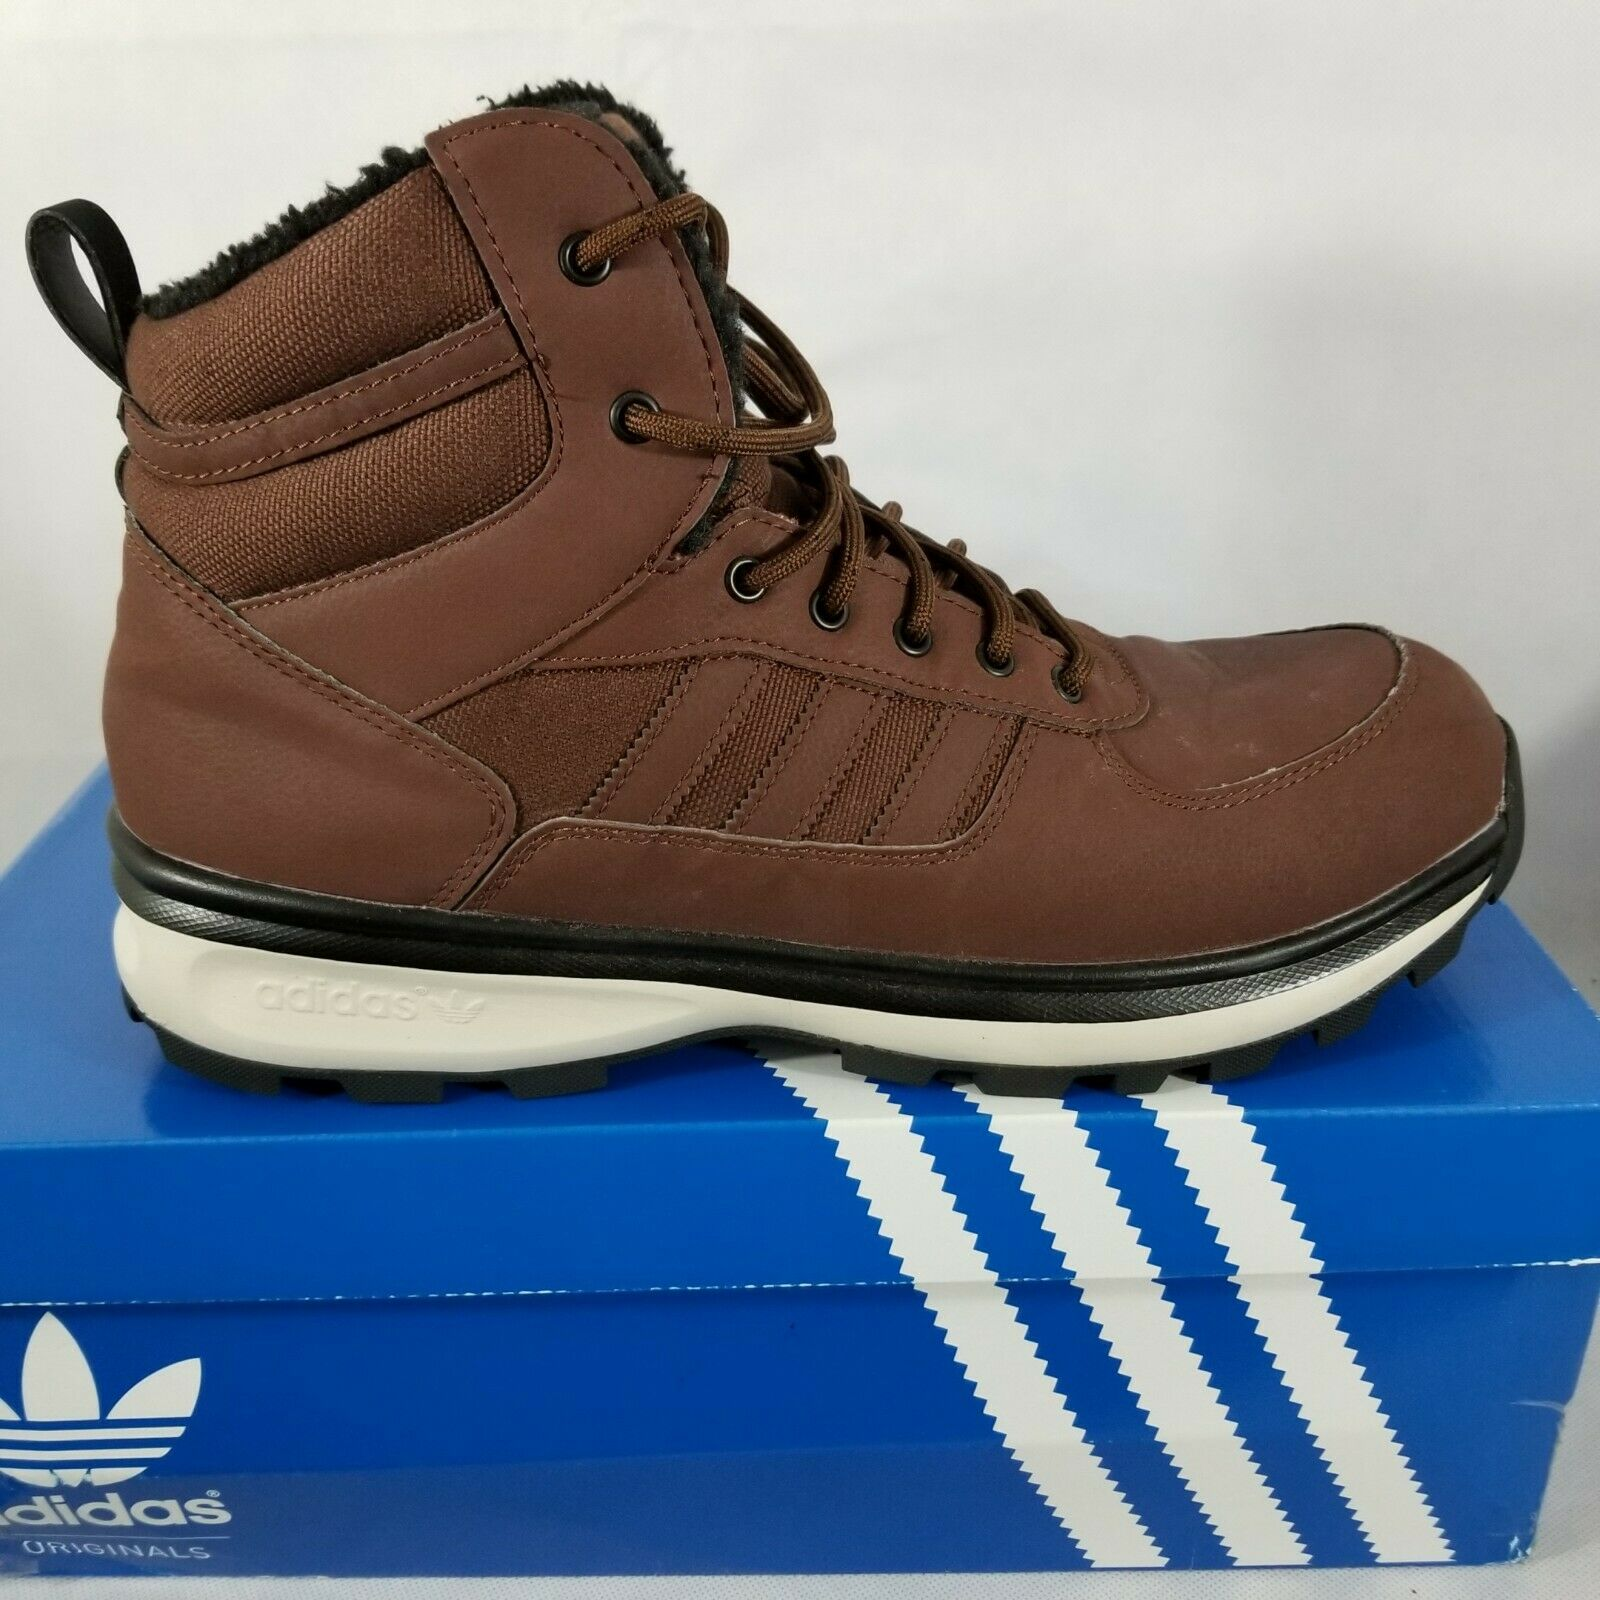 Adidas Men's Chasker Boots Hiking Walking Brown Suede Size 12 M M20694